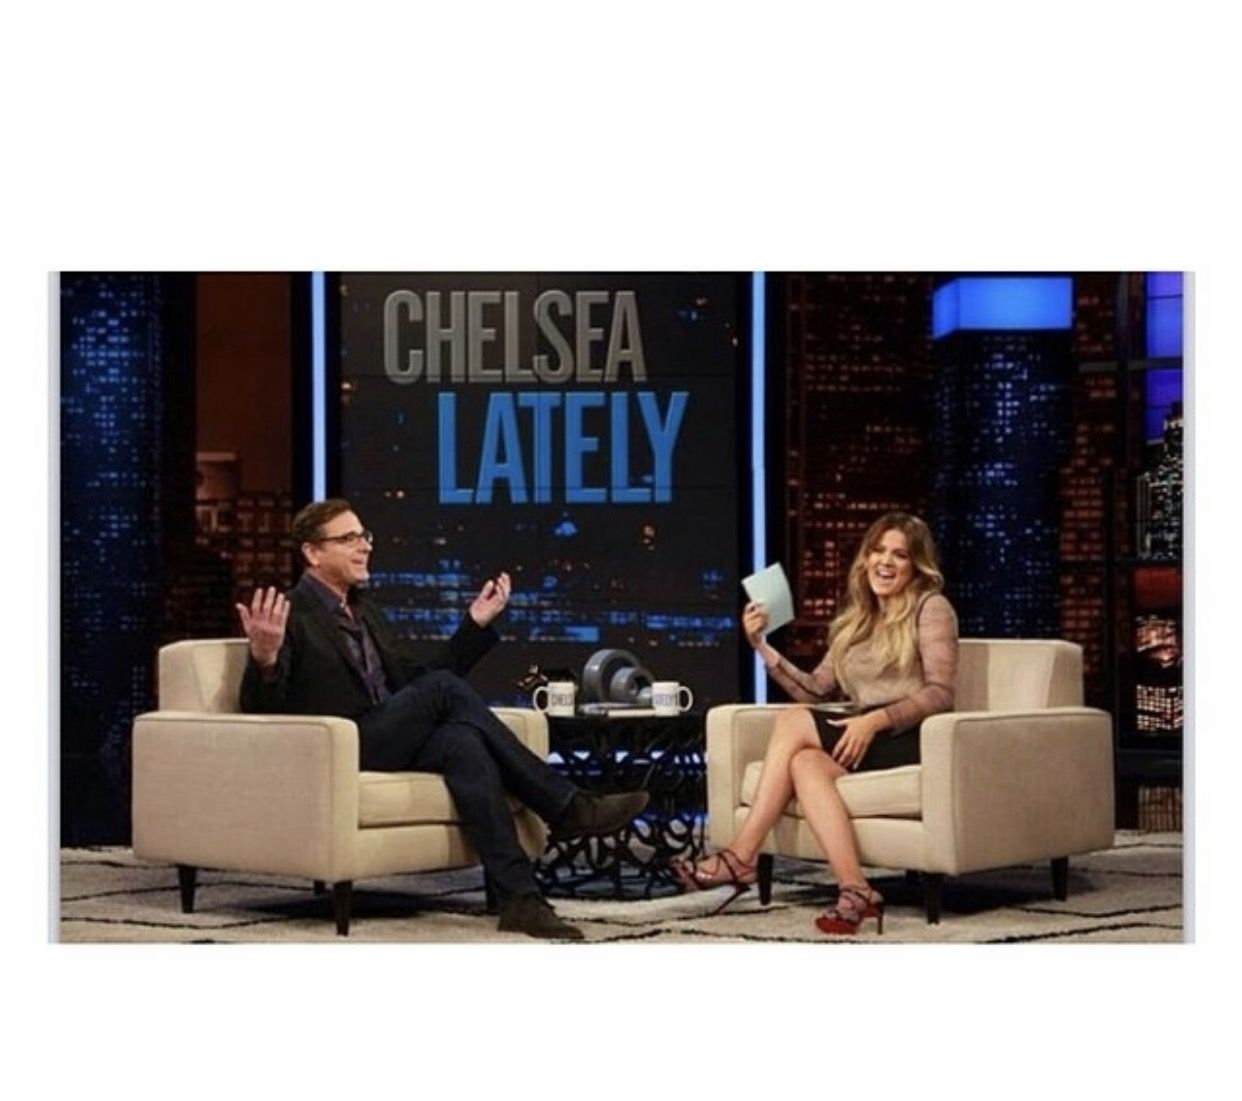 @khloekardashian: Turn on E to watch me take over @Chelsealately tonight at 11/10c @BobSaget is hysterical! #E #ENetwork #DirtyDaddy